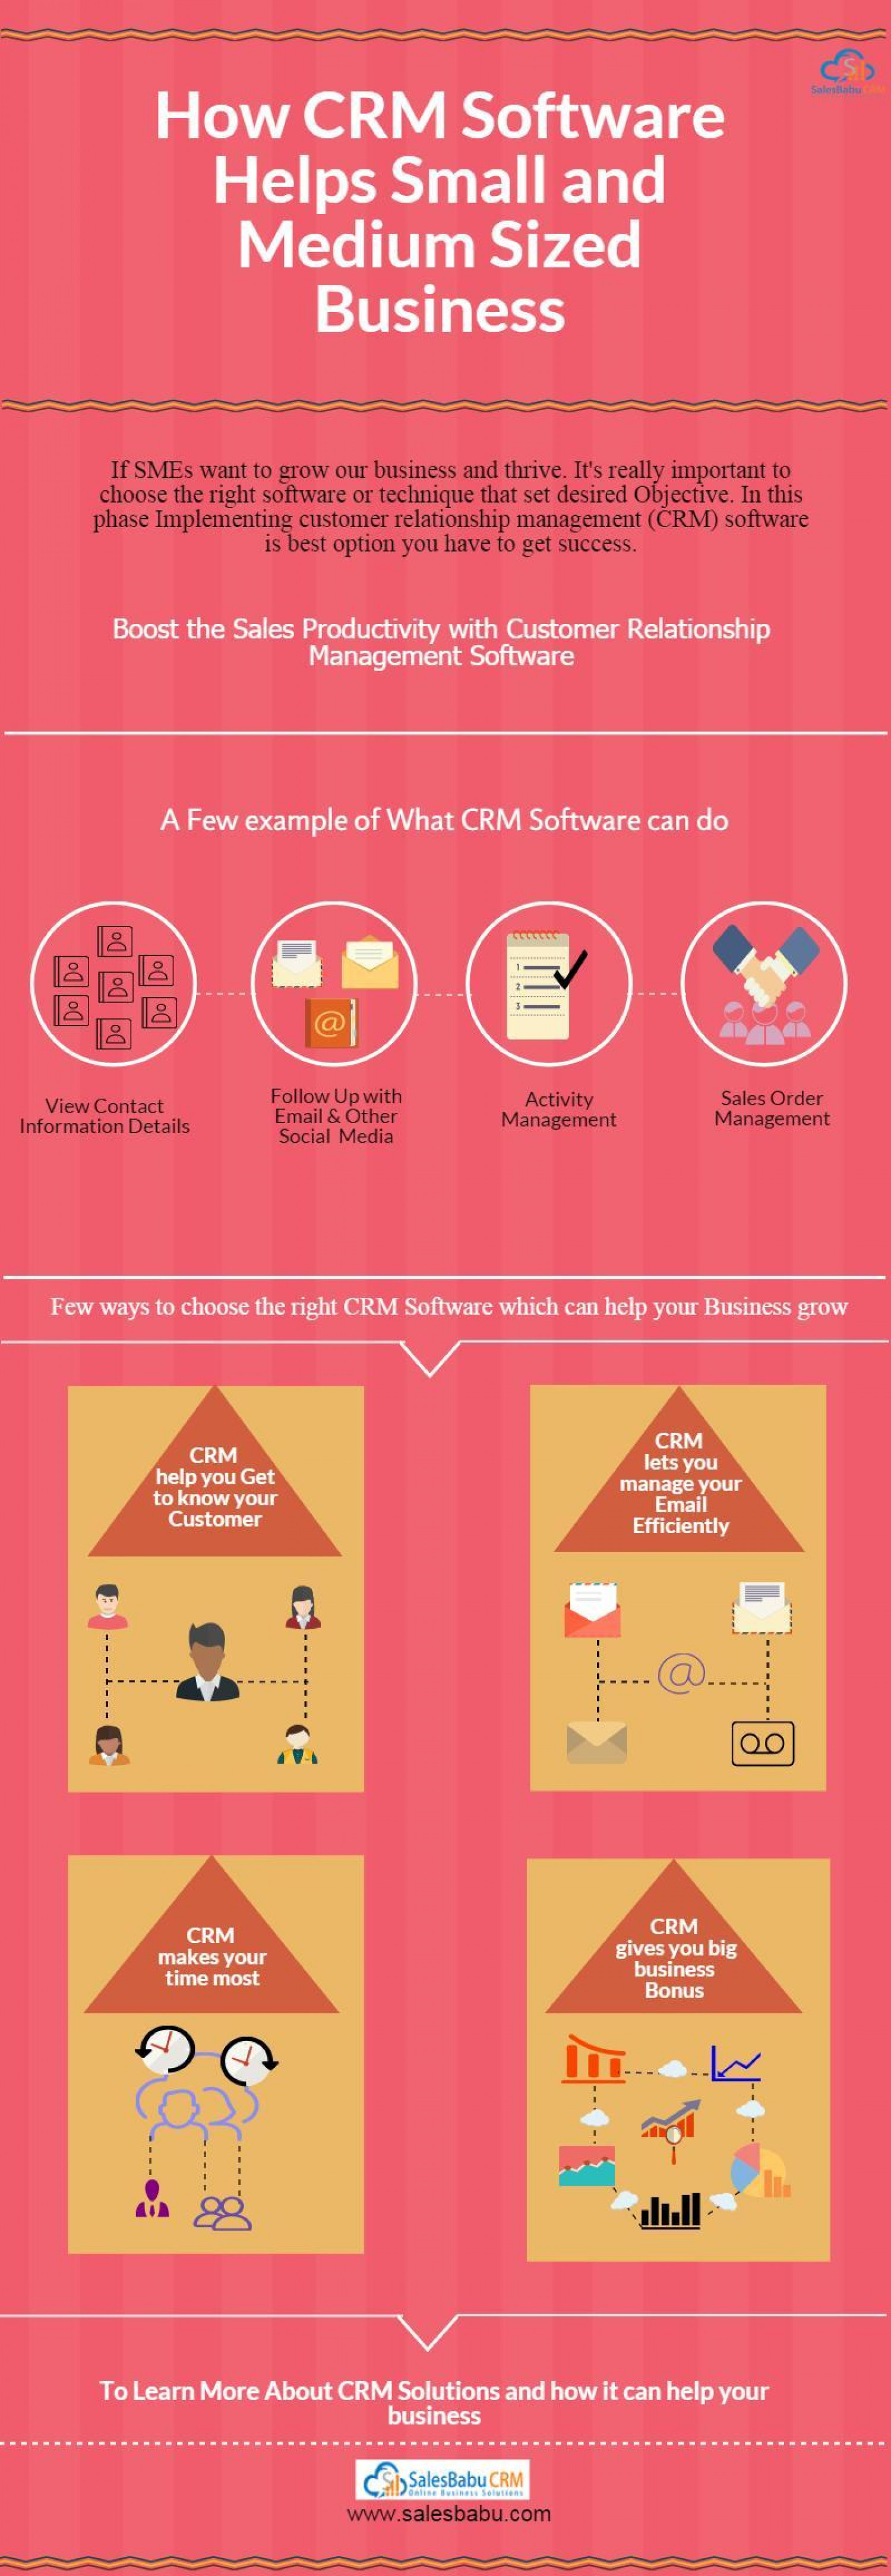 How CRM Software Helps Small and Medium Sized Business Infographic